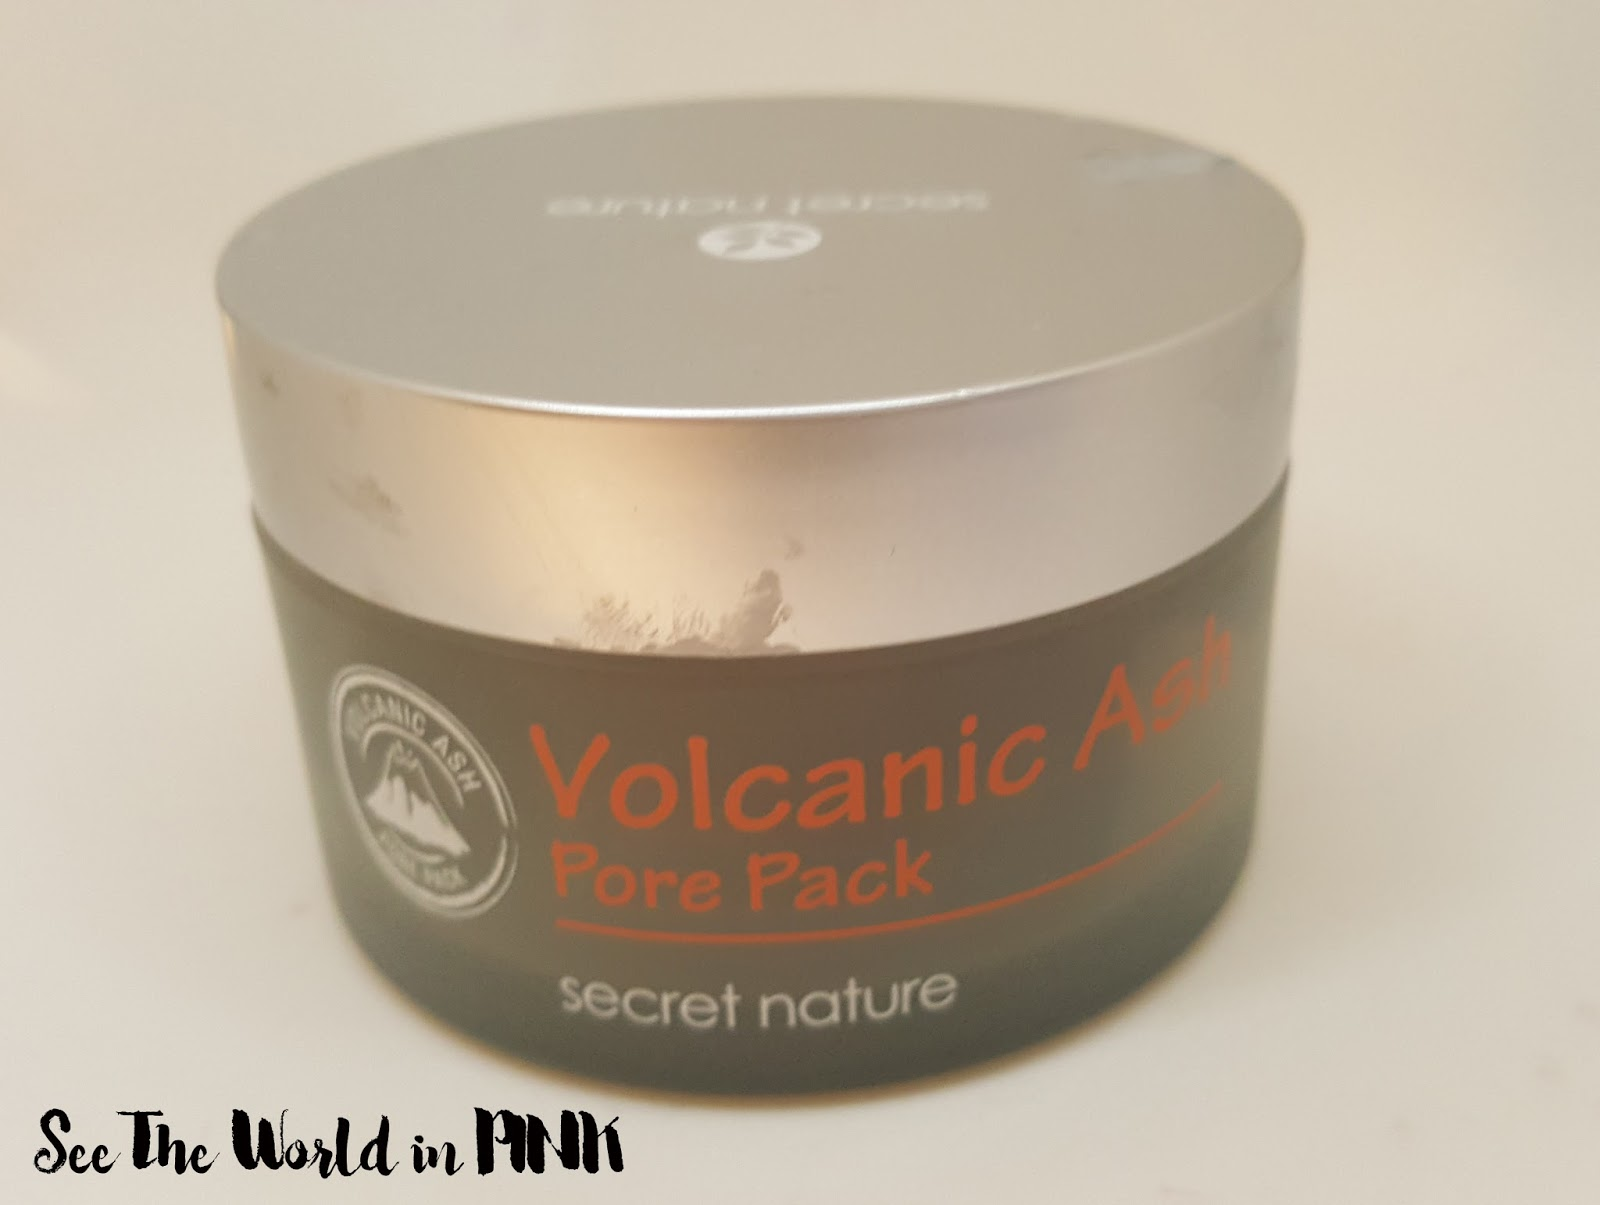 Secret Nature Volcanic Ash Pore Pack Review